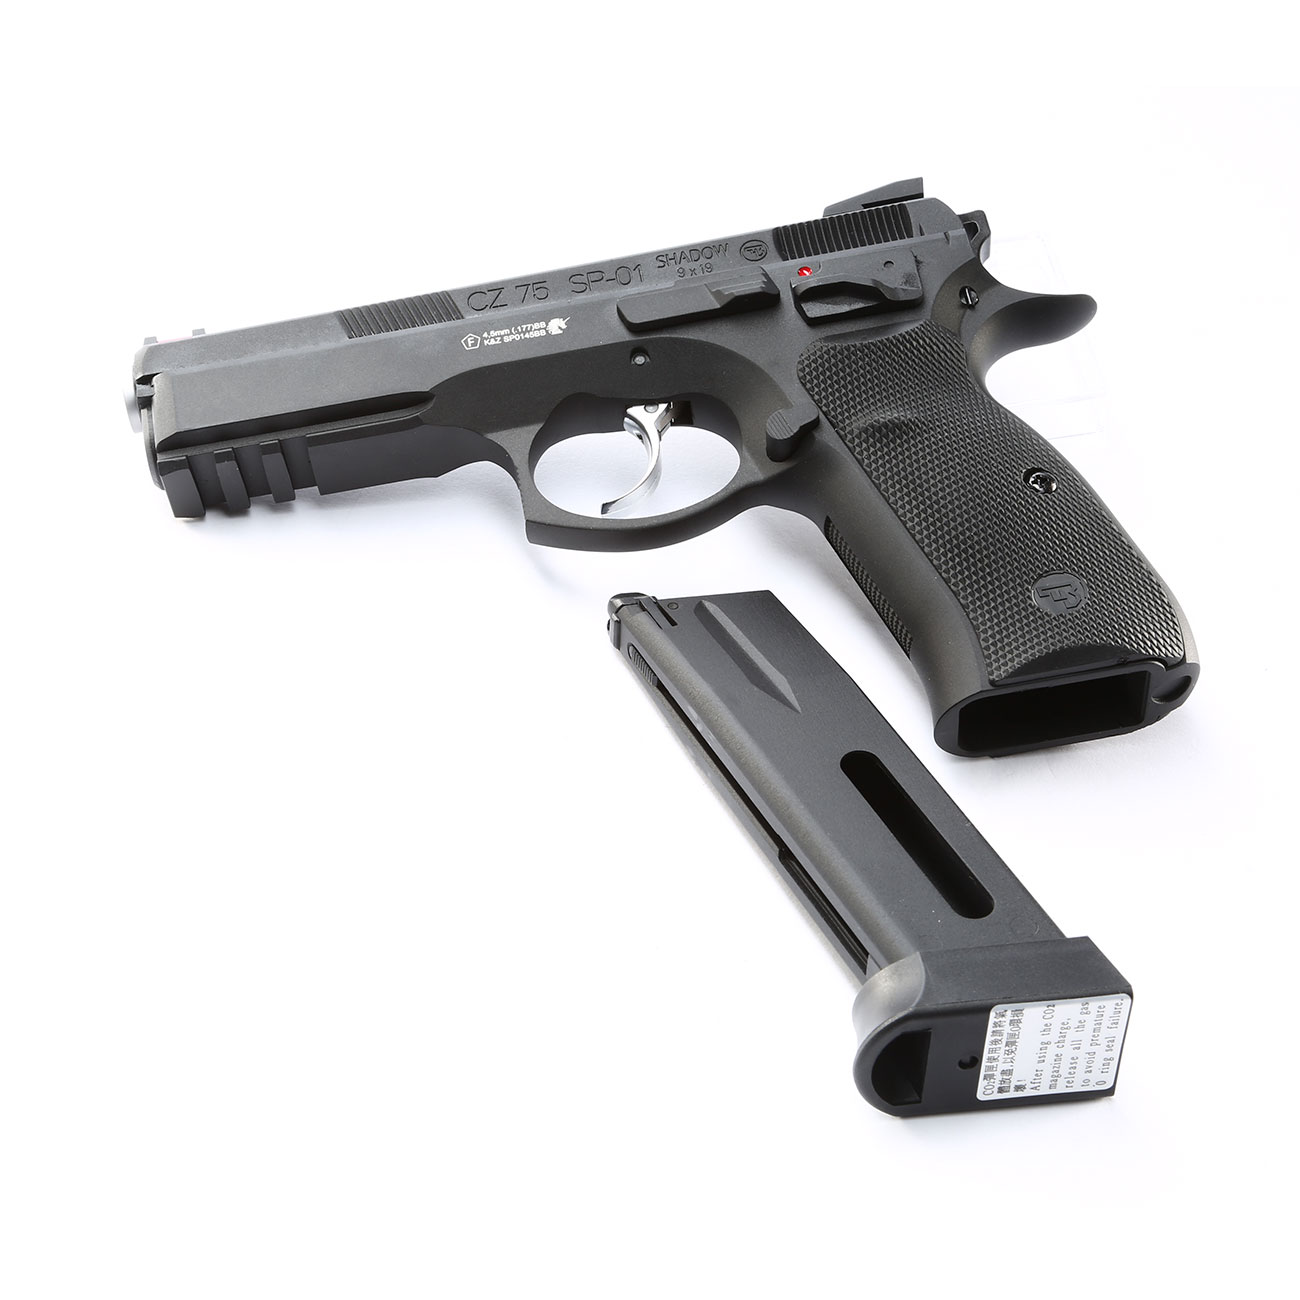 ASG CZ 75 SP-01 Shadow CO2-Luftpistole Kal. 4,5mm BB schwarz Vollmetall Blowback 7